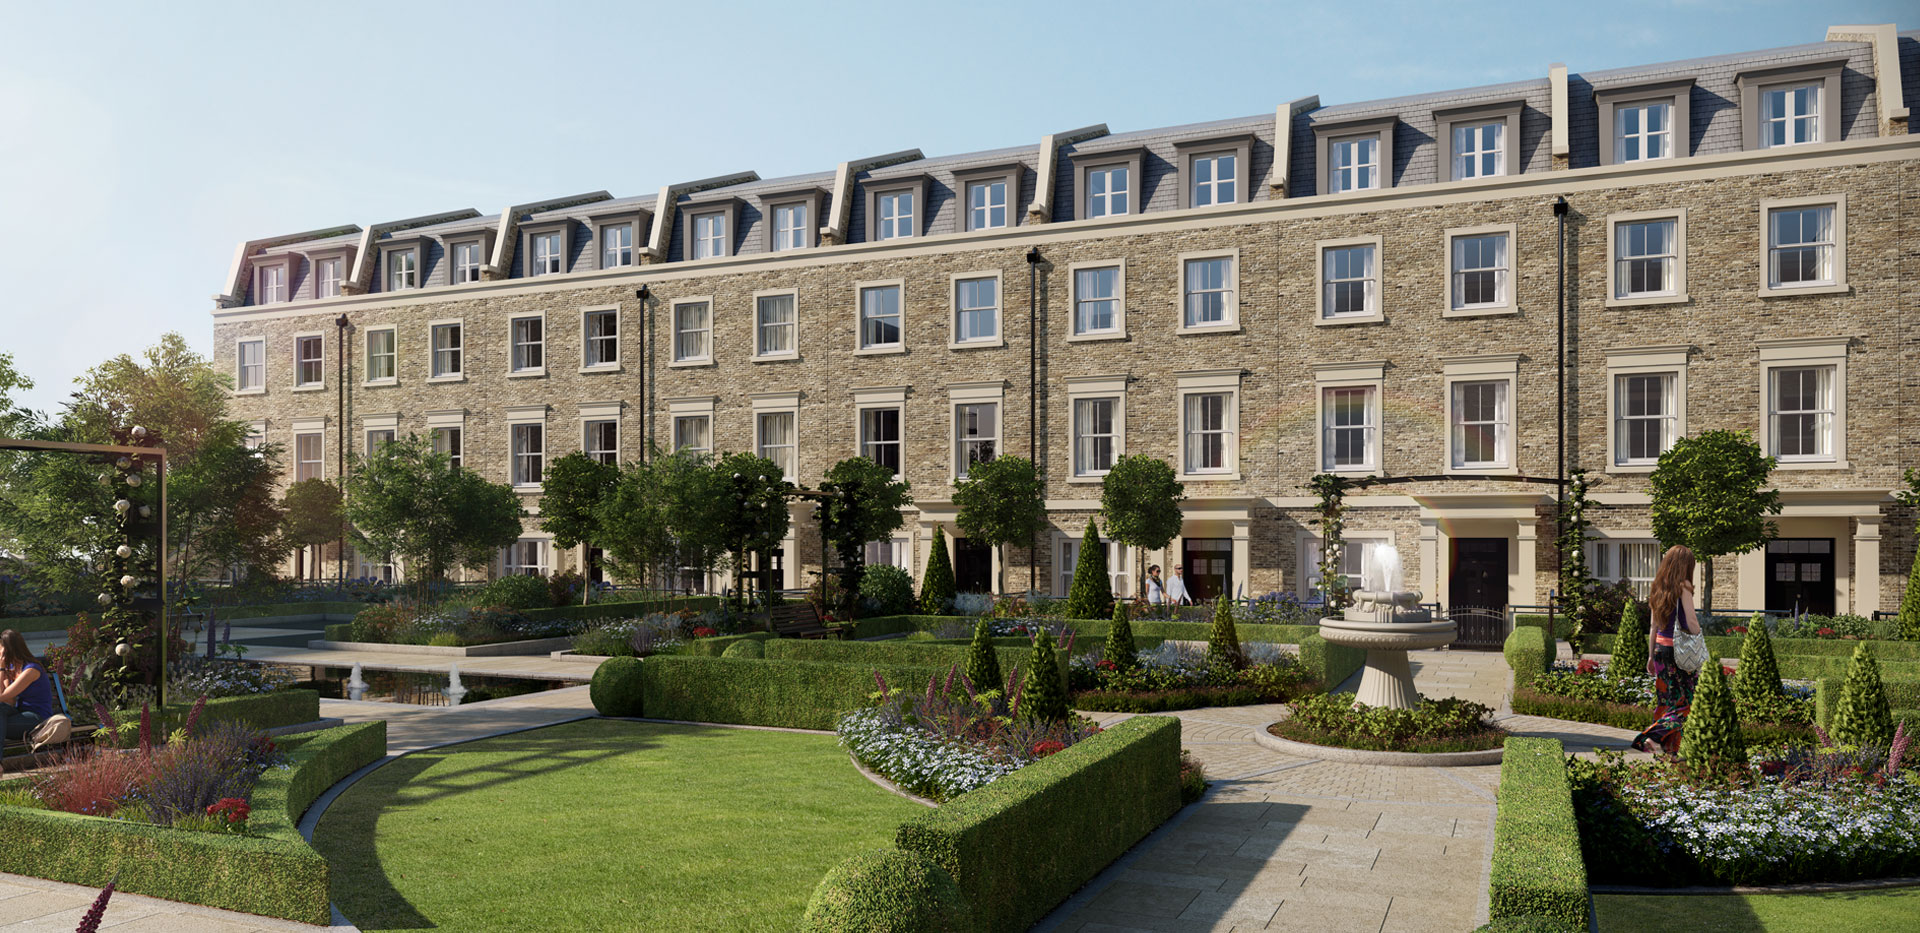 Berkeley, Chiswick Gate, Gallery, Exterior, Townhouses Courtyard